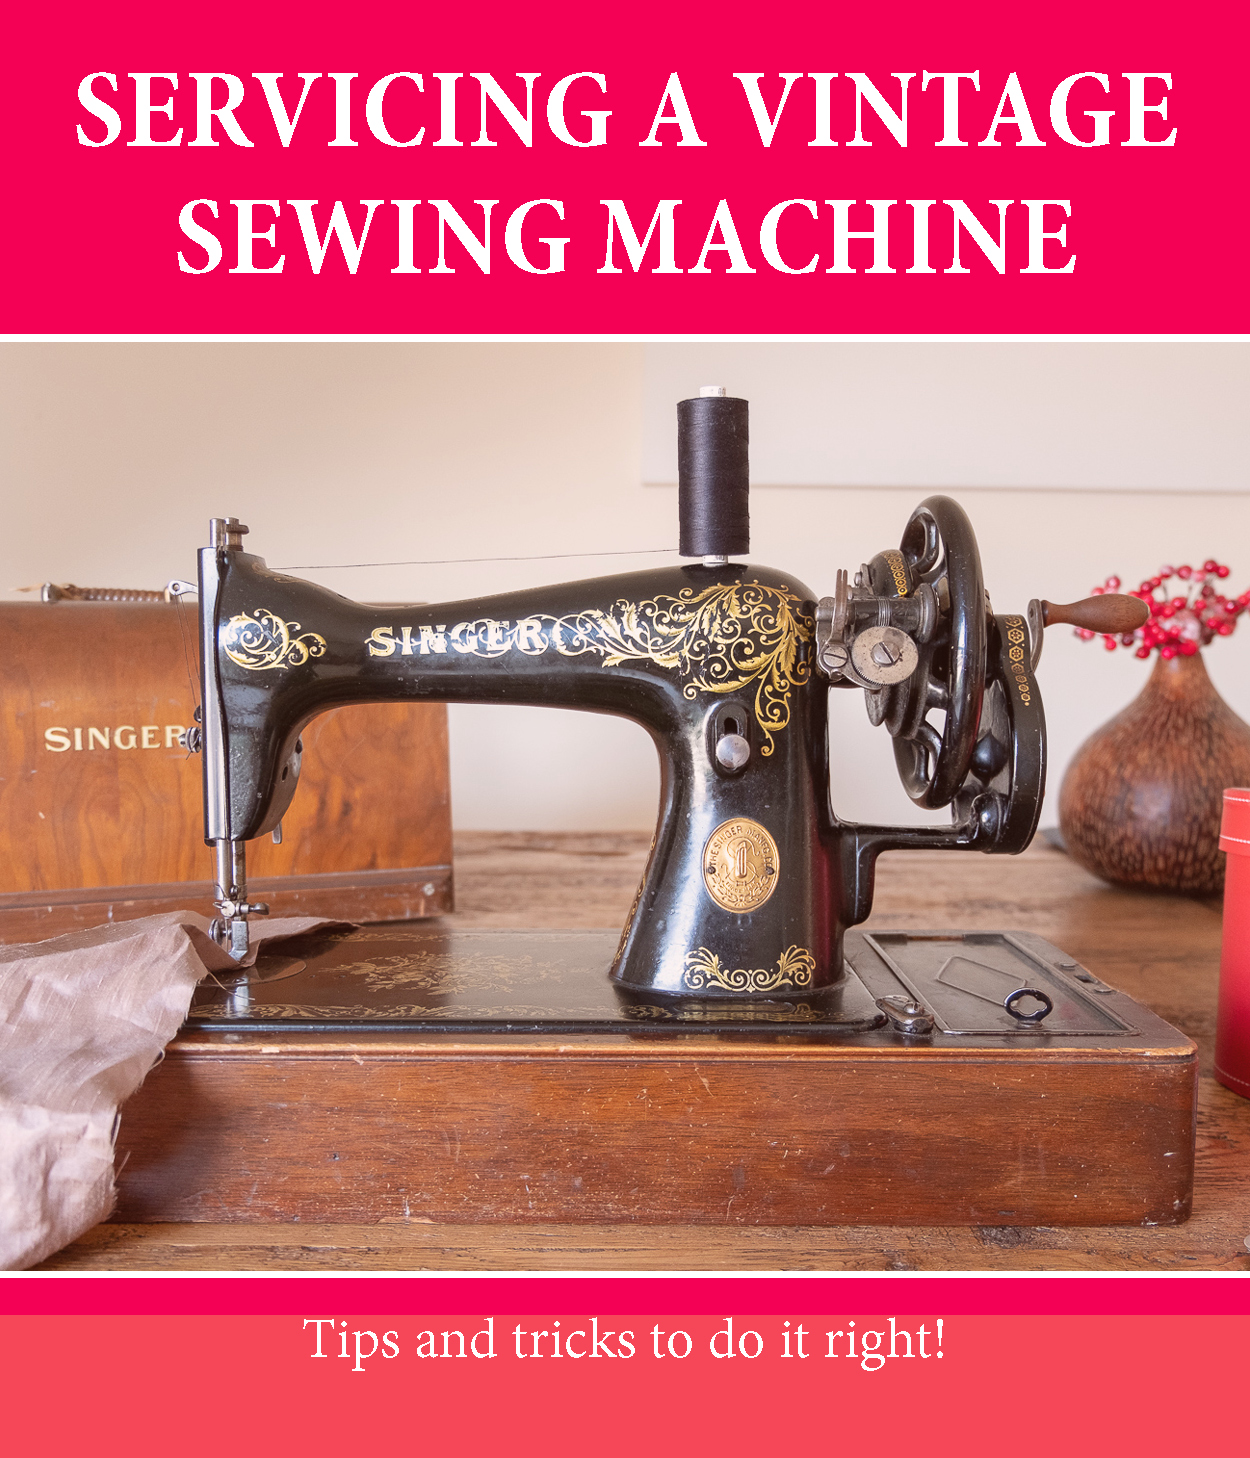 How to service a vintage sewing machine